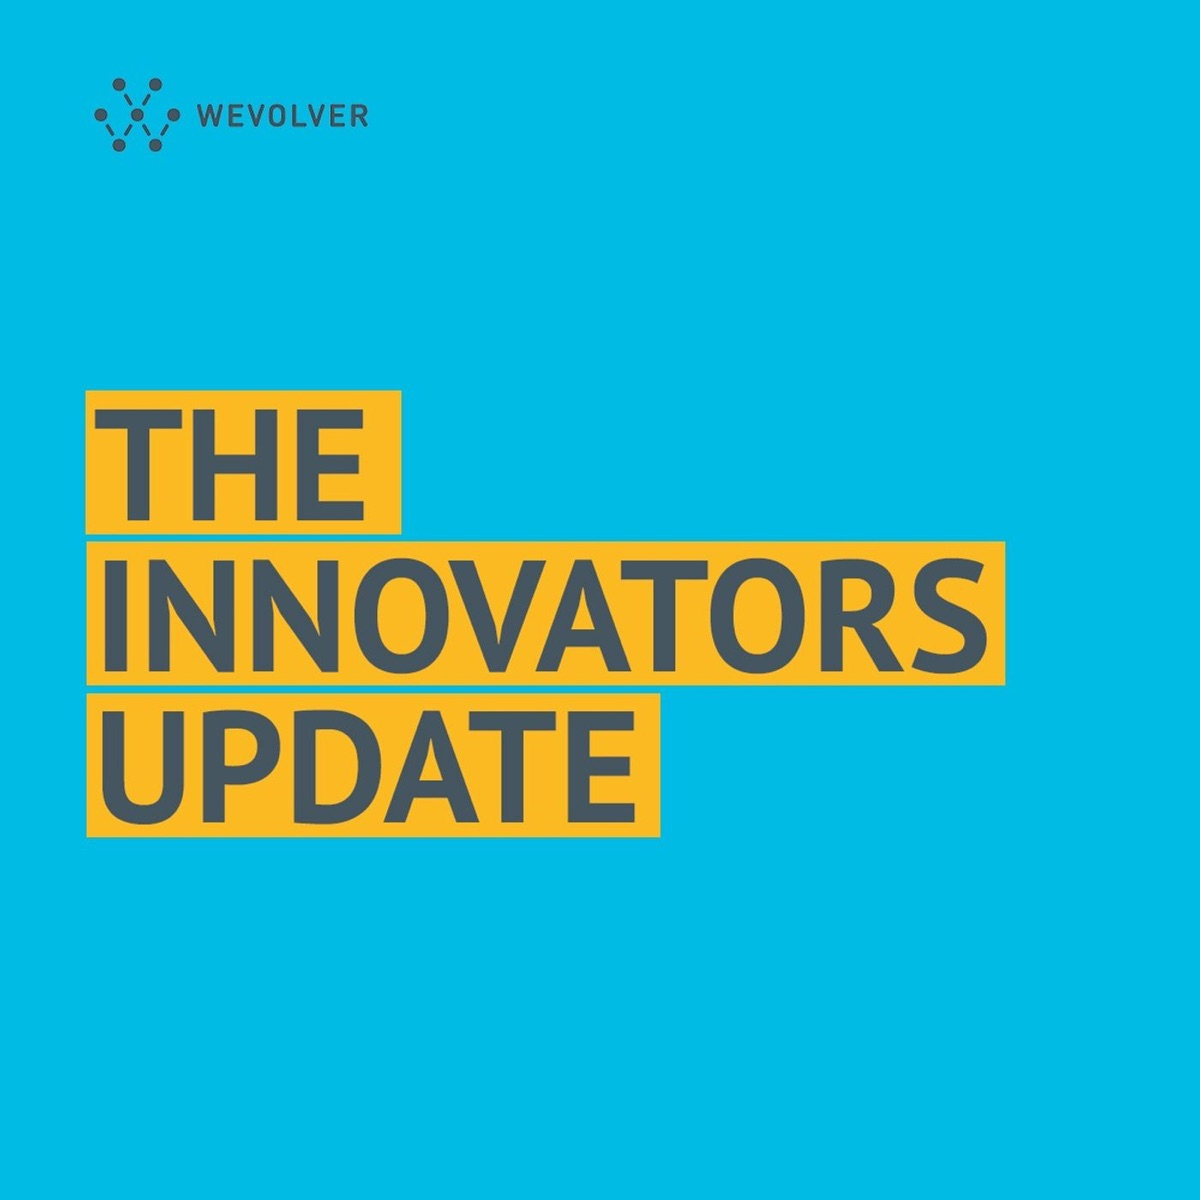 The Innovators Update